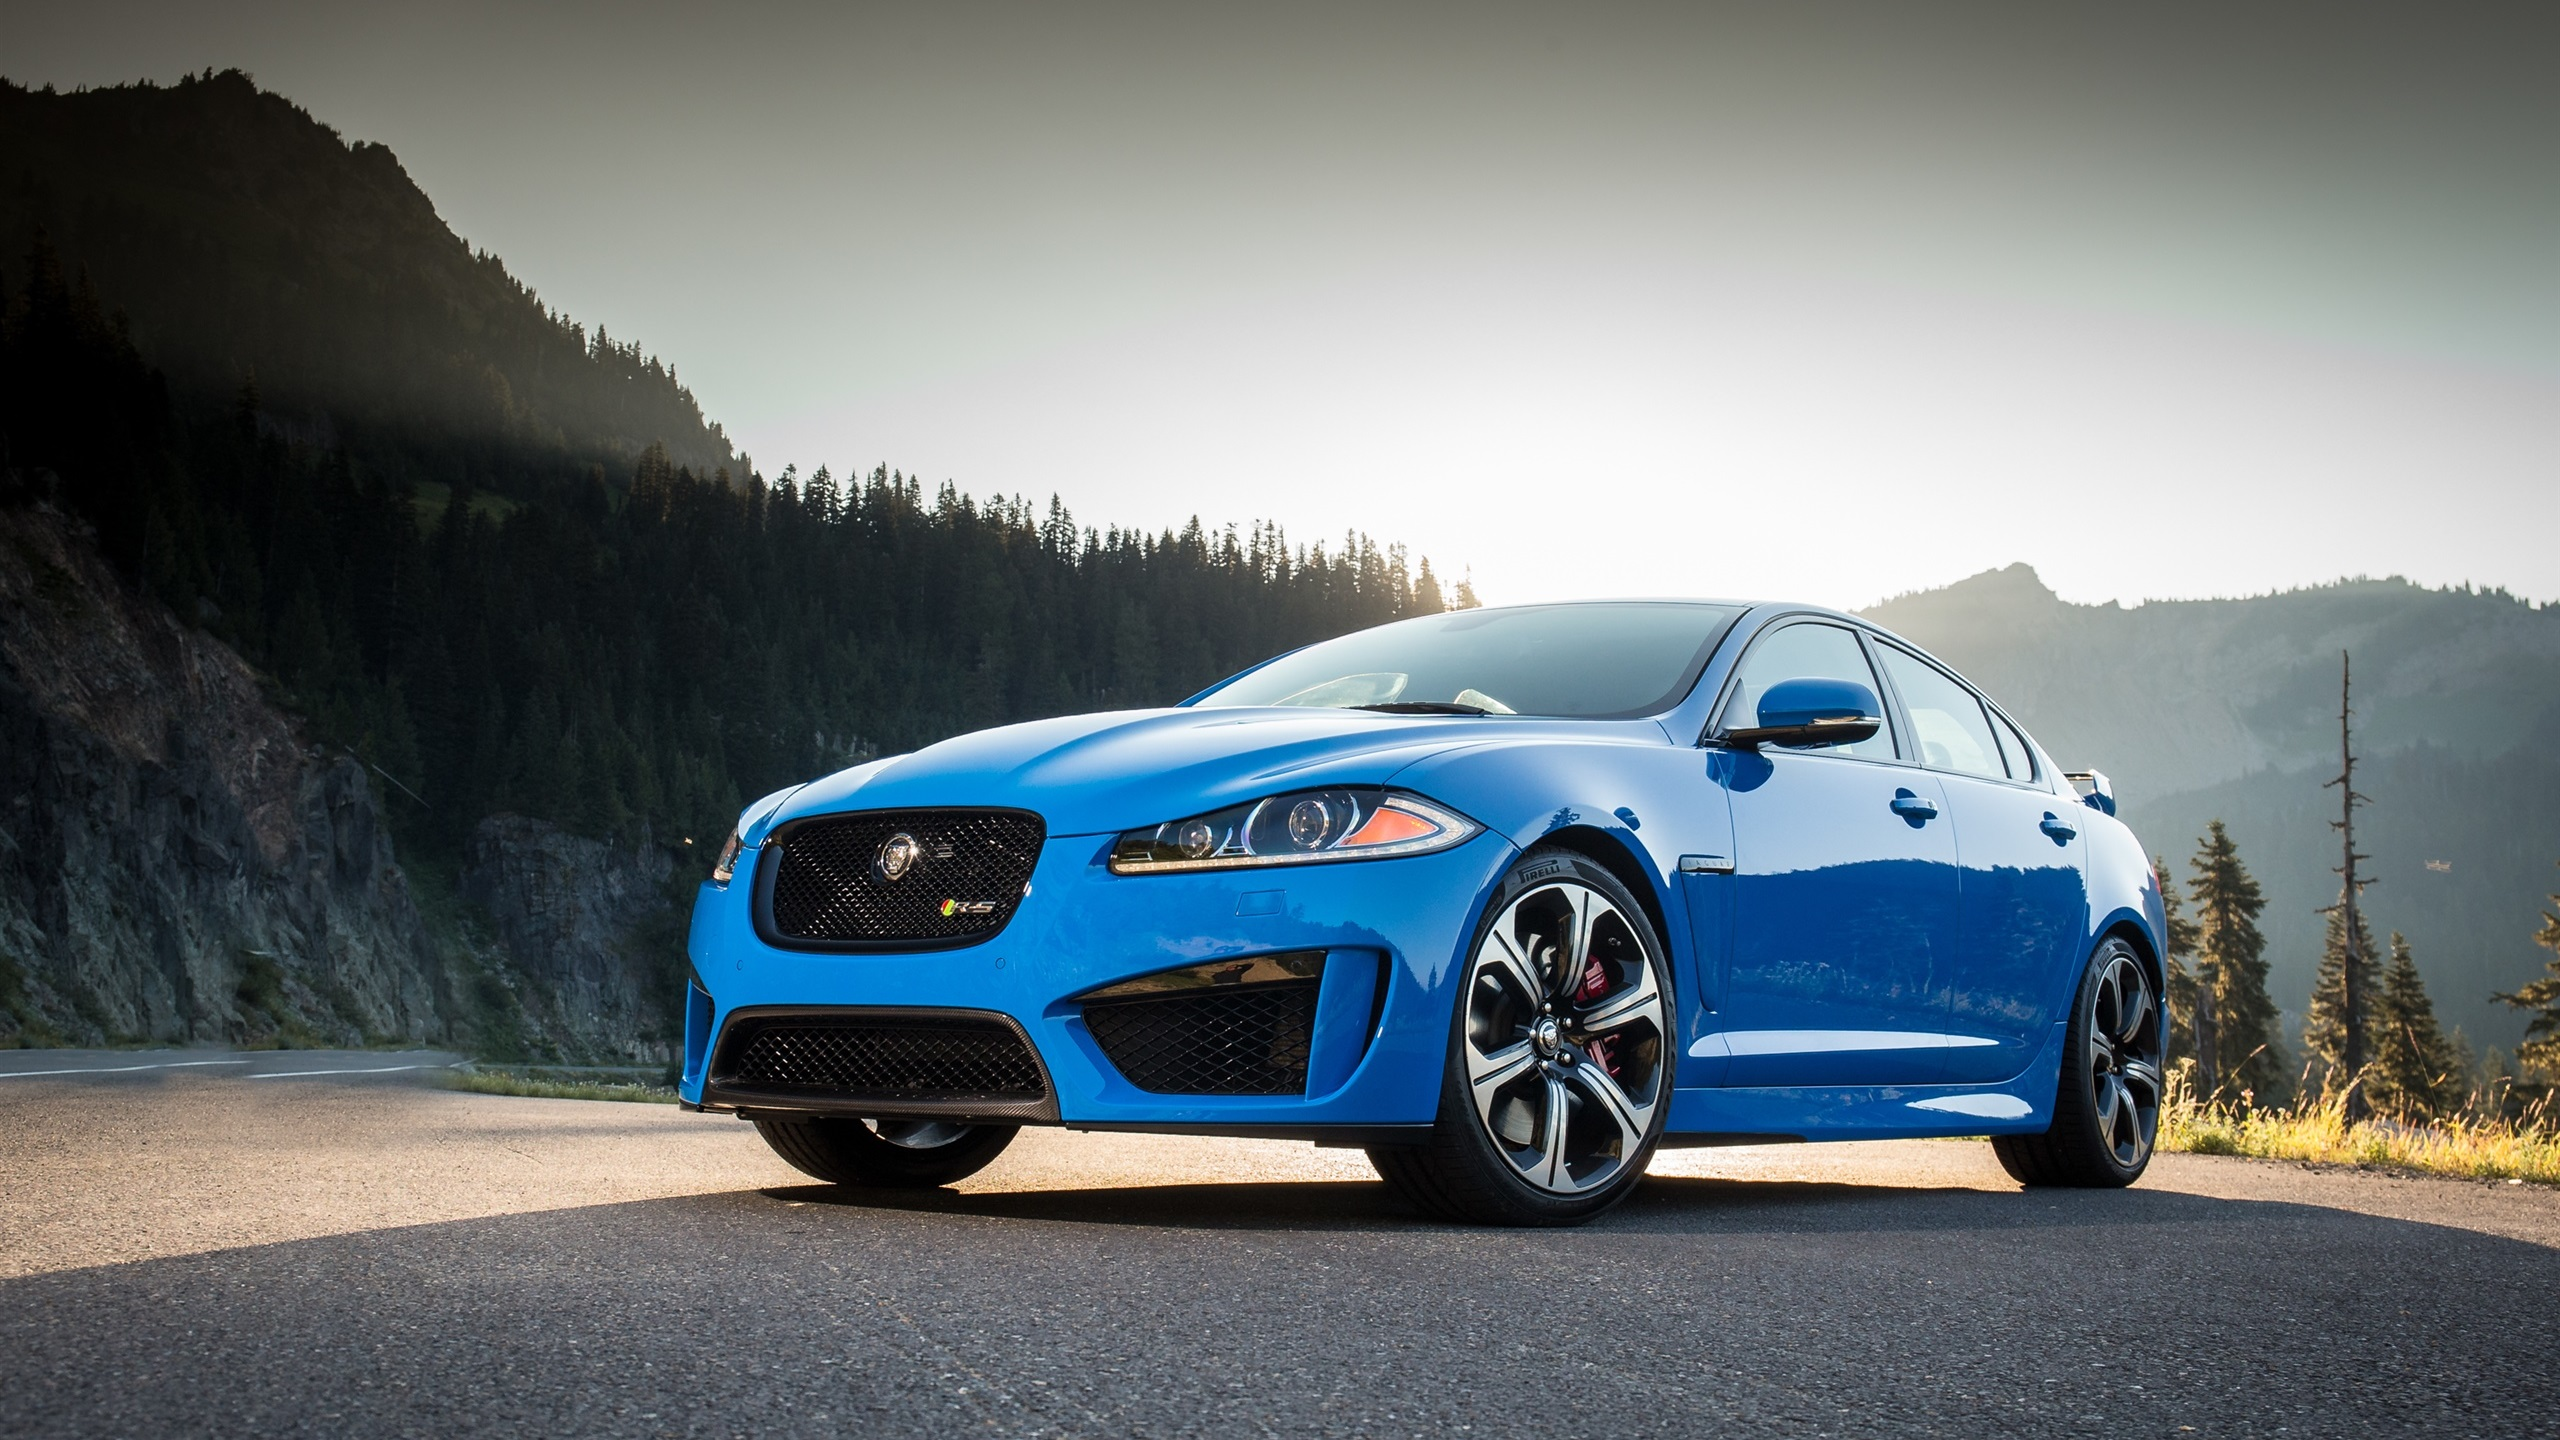 Jaguar cars blue - photo#27